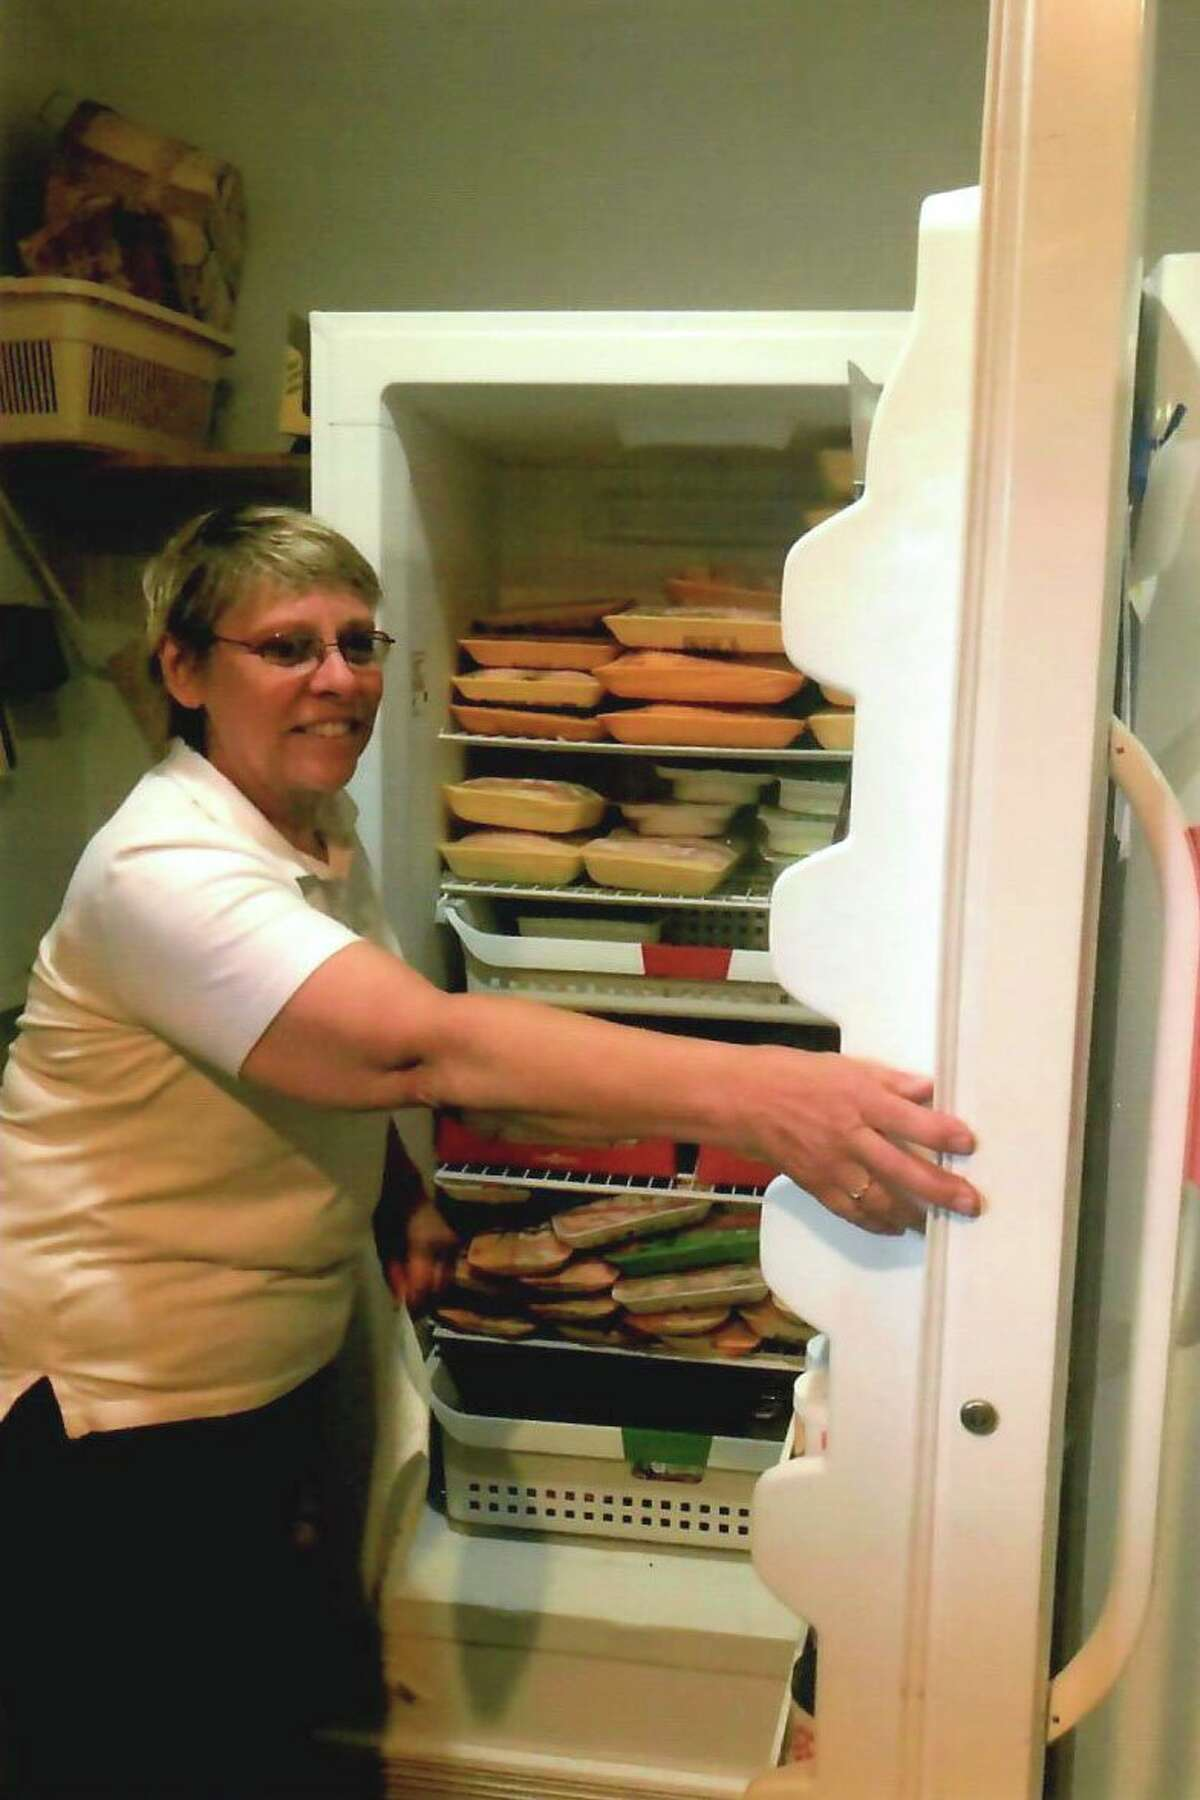 Bonnie Clark,of Manna Pantry,said United Way funding provides a base that allows her to expand and collaborate further. (Courtesy photo)